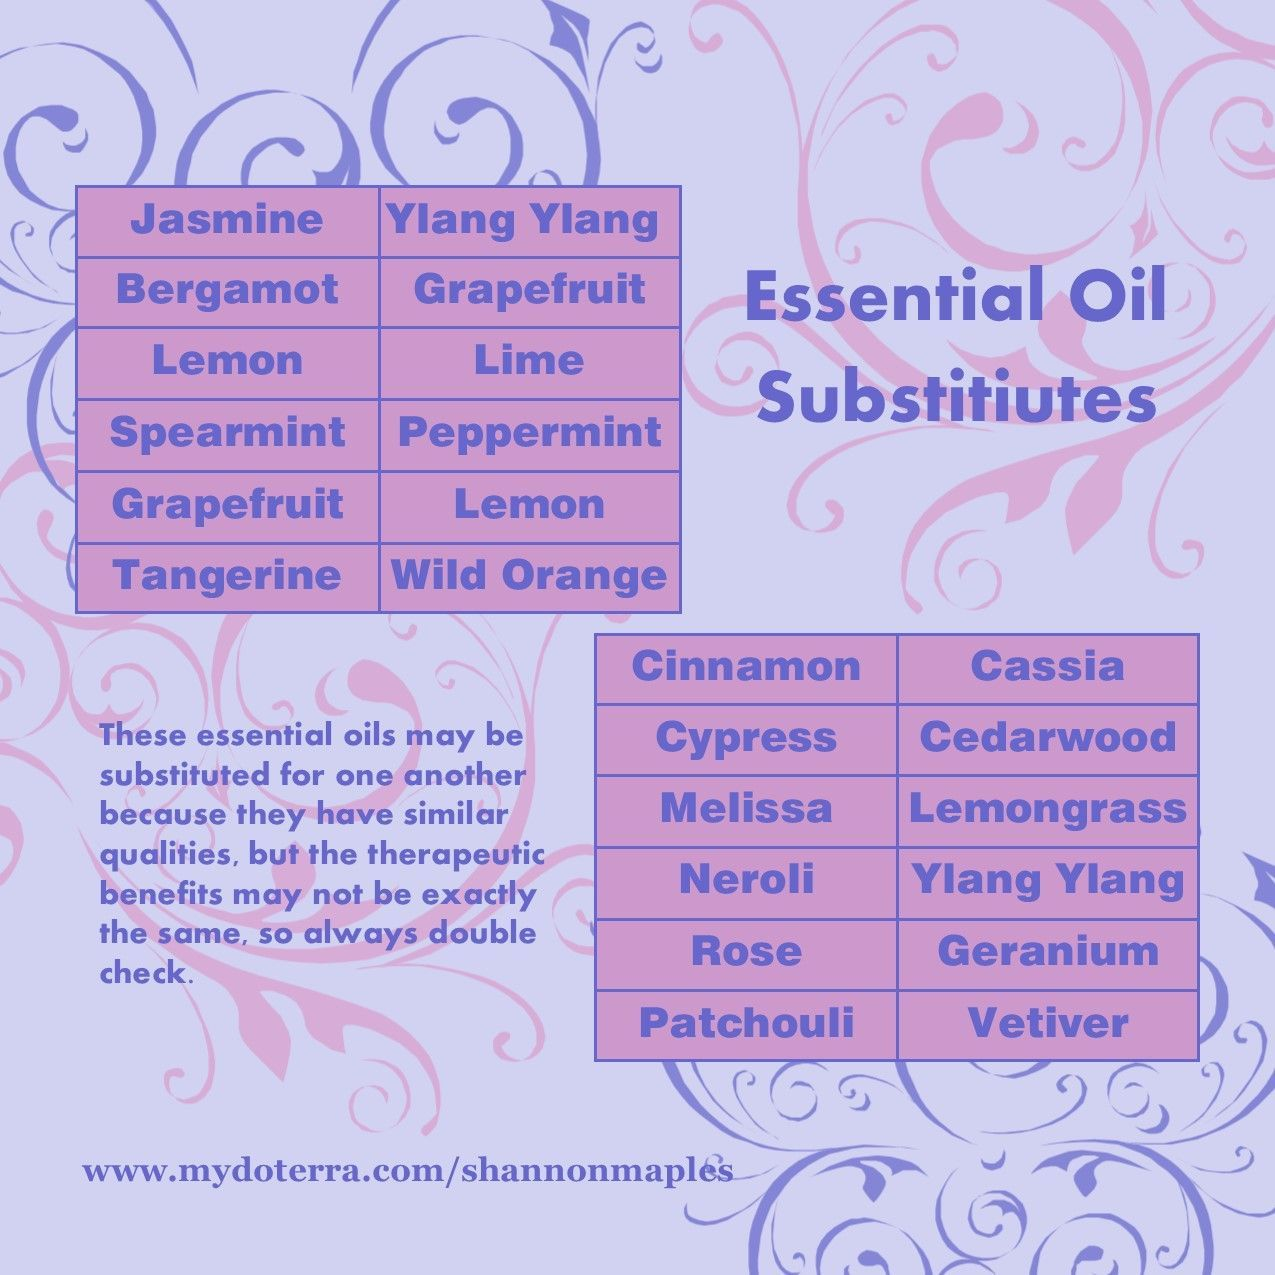 Here is a list of essential oils you can substitute for one another if you are in a pinch. For more info, or to order oils at 25% off retail, join the conversation on Facebook at https://www.facebook.com/eosandmore or www.mydoterra.com/shannonmaples